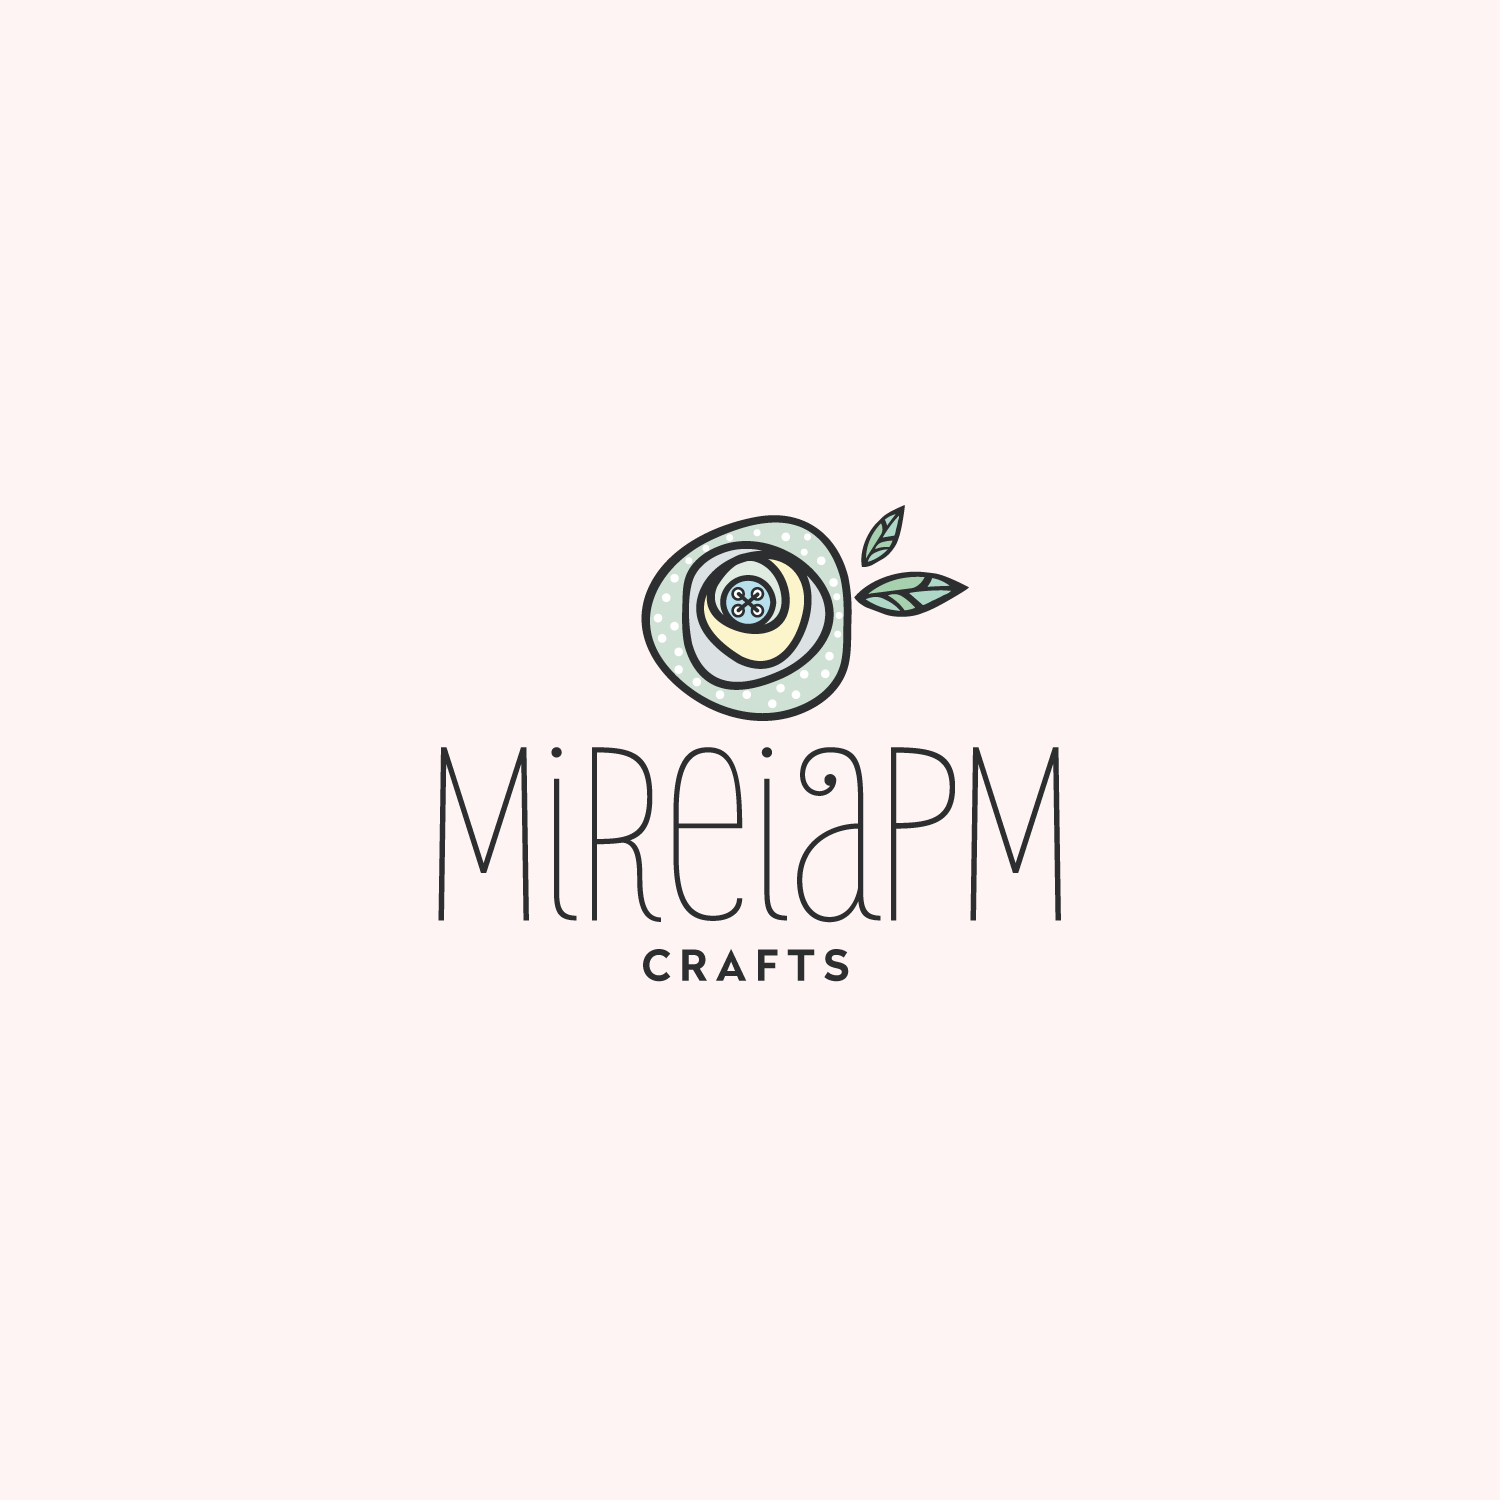 Colorful feminine logo design for mireiapm crafts by woow designs colorful feminine logo design for a company in spain design 19390296 stopboris Choice Image